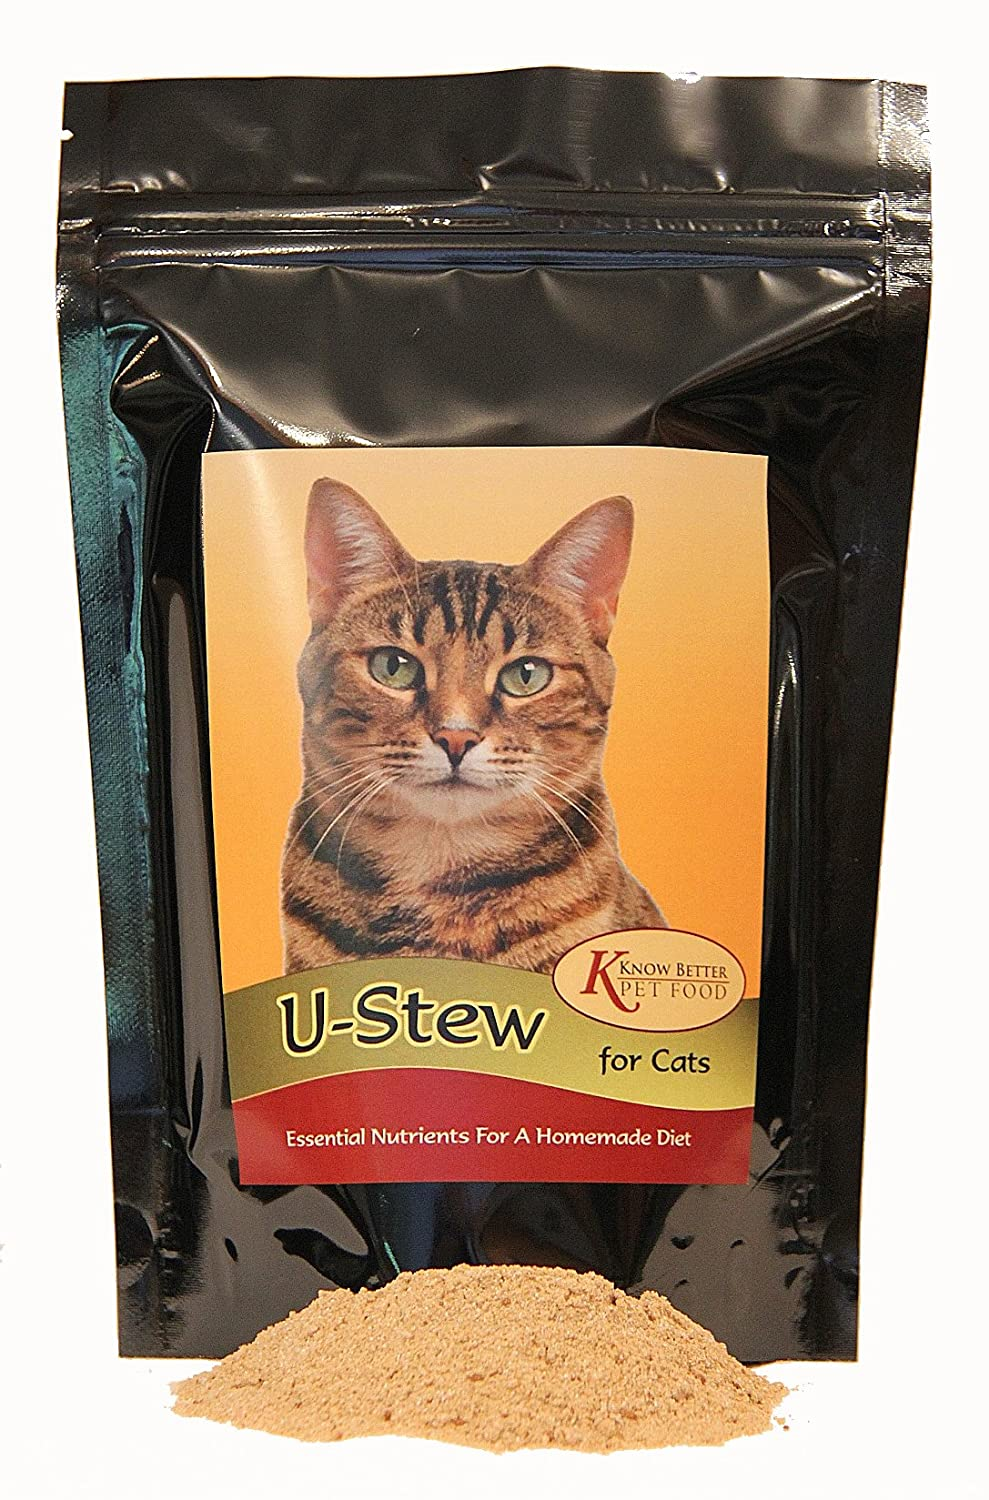 12oz U-Stew for Cats Make your own homemade cooked cat food  Cat Food Supplement